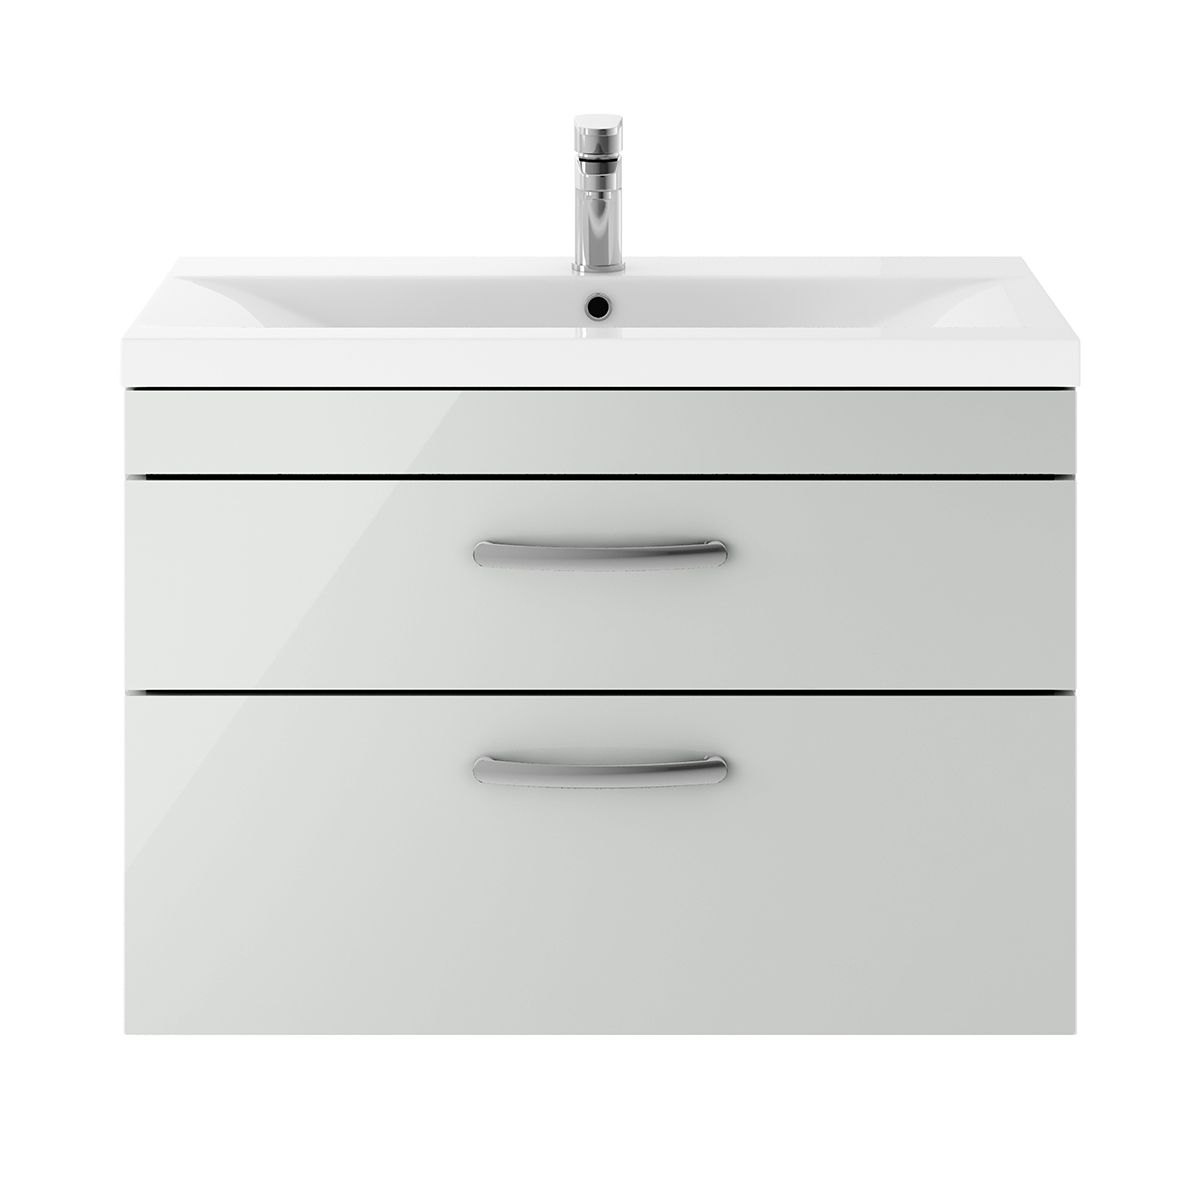 Nuie Athena Gloss Grey Mist 2 Drawer Wall Hung Unit 800mm with Mid Edge Basin